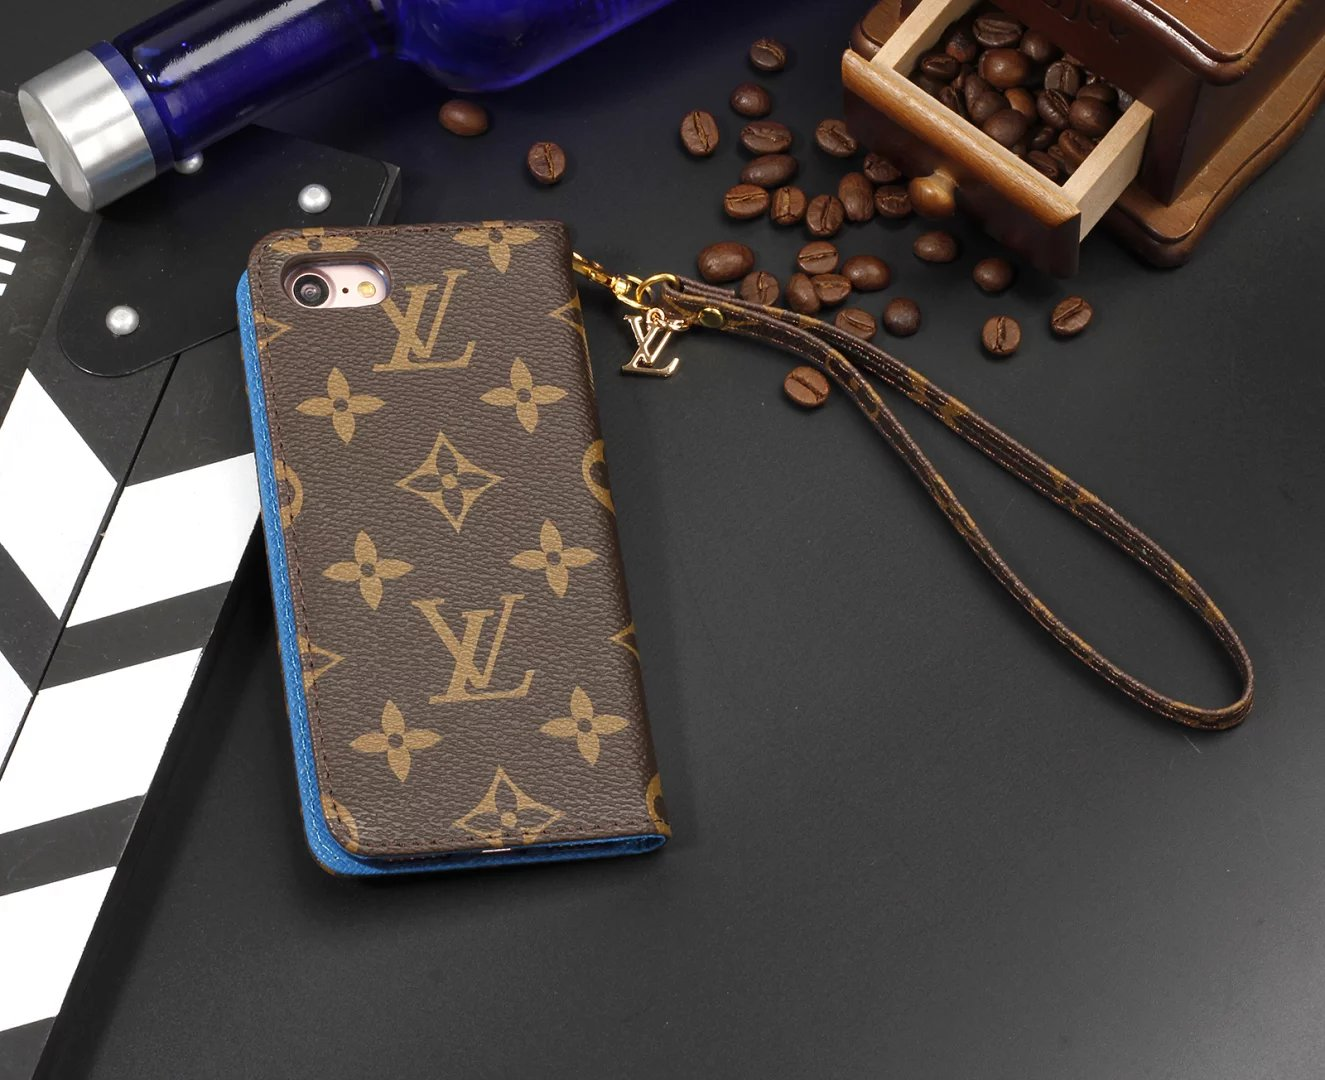 iphone 8 Plus full cover case iphone 8 Plusa cases Louis Vuitton iphone 8 Plus case customised iphone cases morphie juice pack plus designer iphone cases 8 Plus case it phone covers iPhone 8 Plus 8 Plus case mophie iphone 8 Plus case